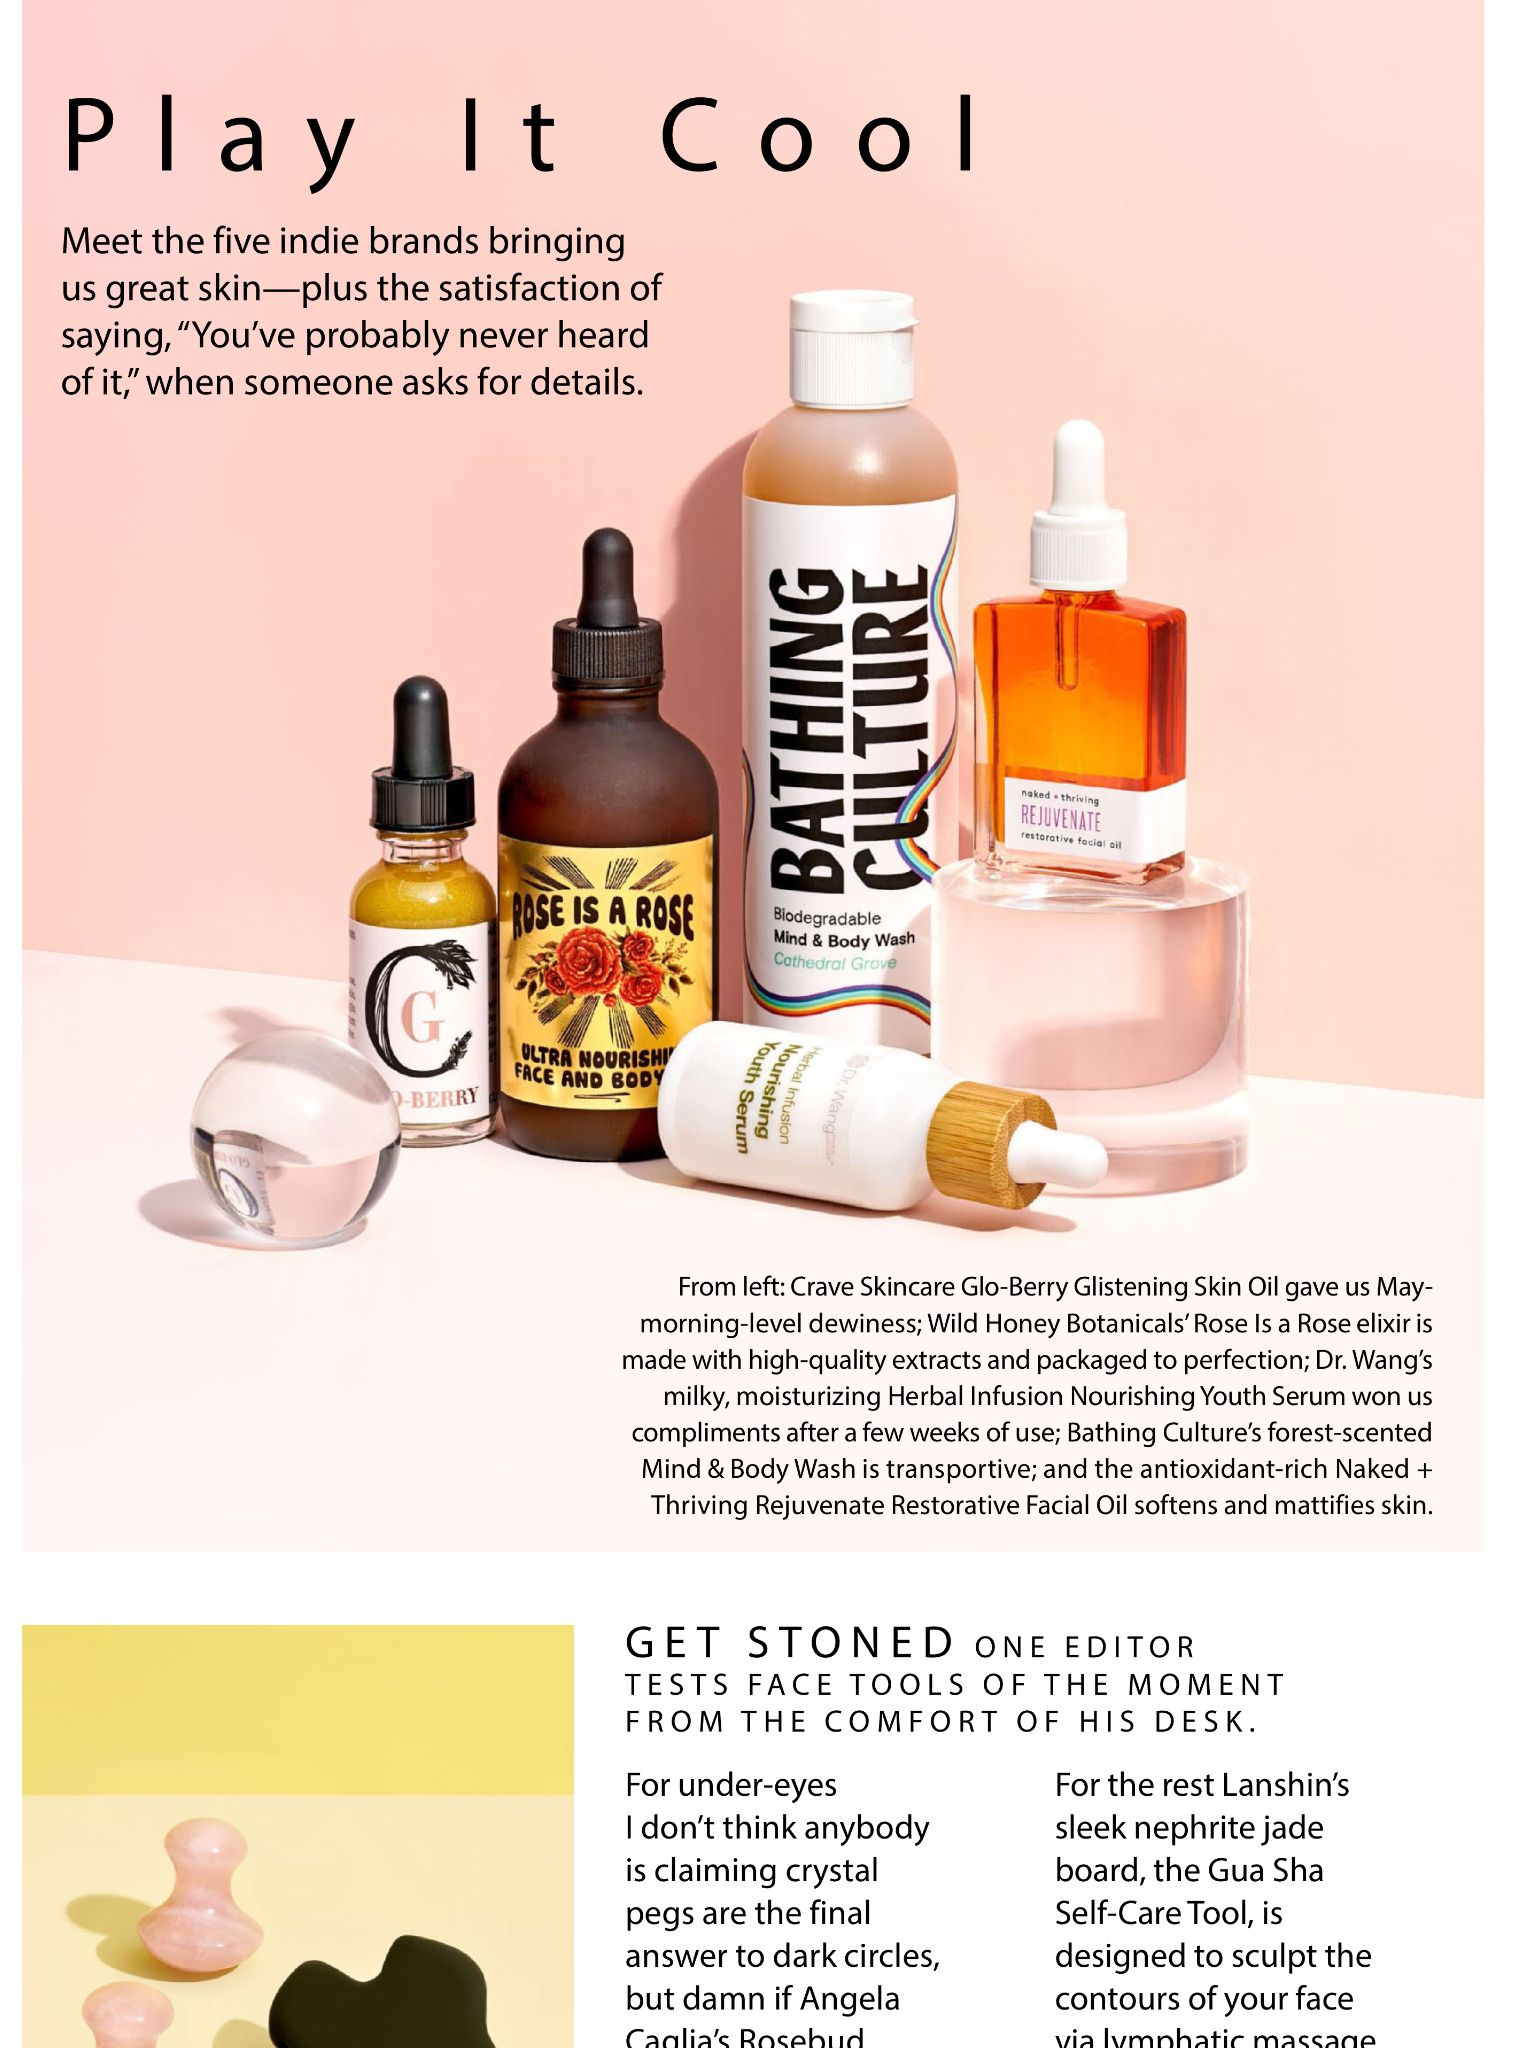 """""""Play It Cool"""" from Allure, July 20185 new indie brands"""